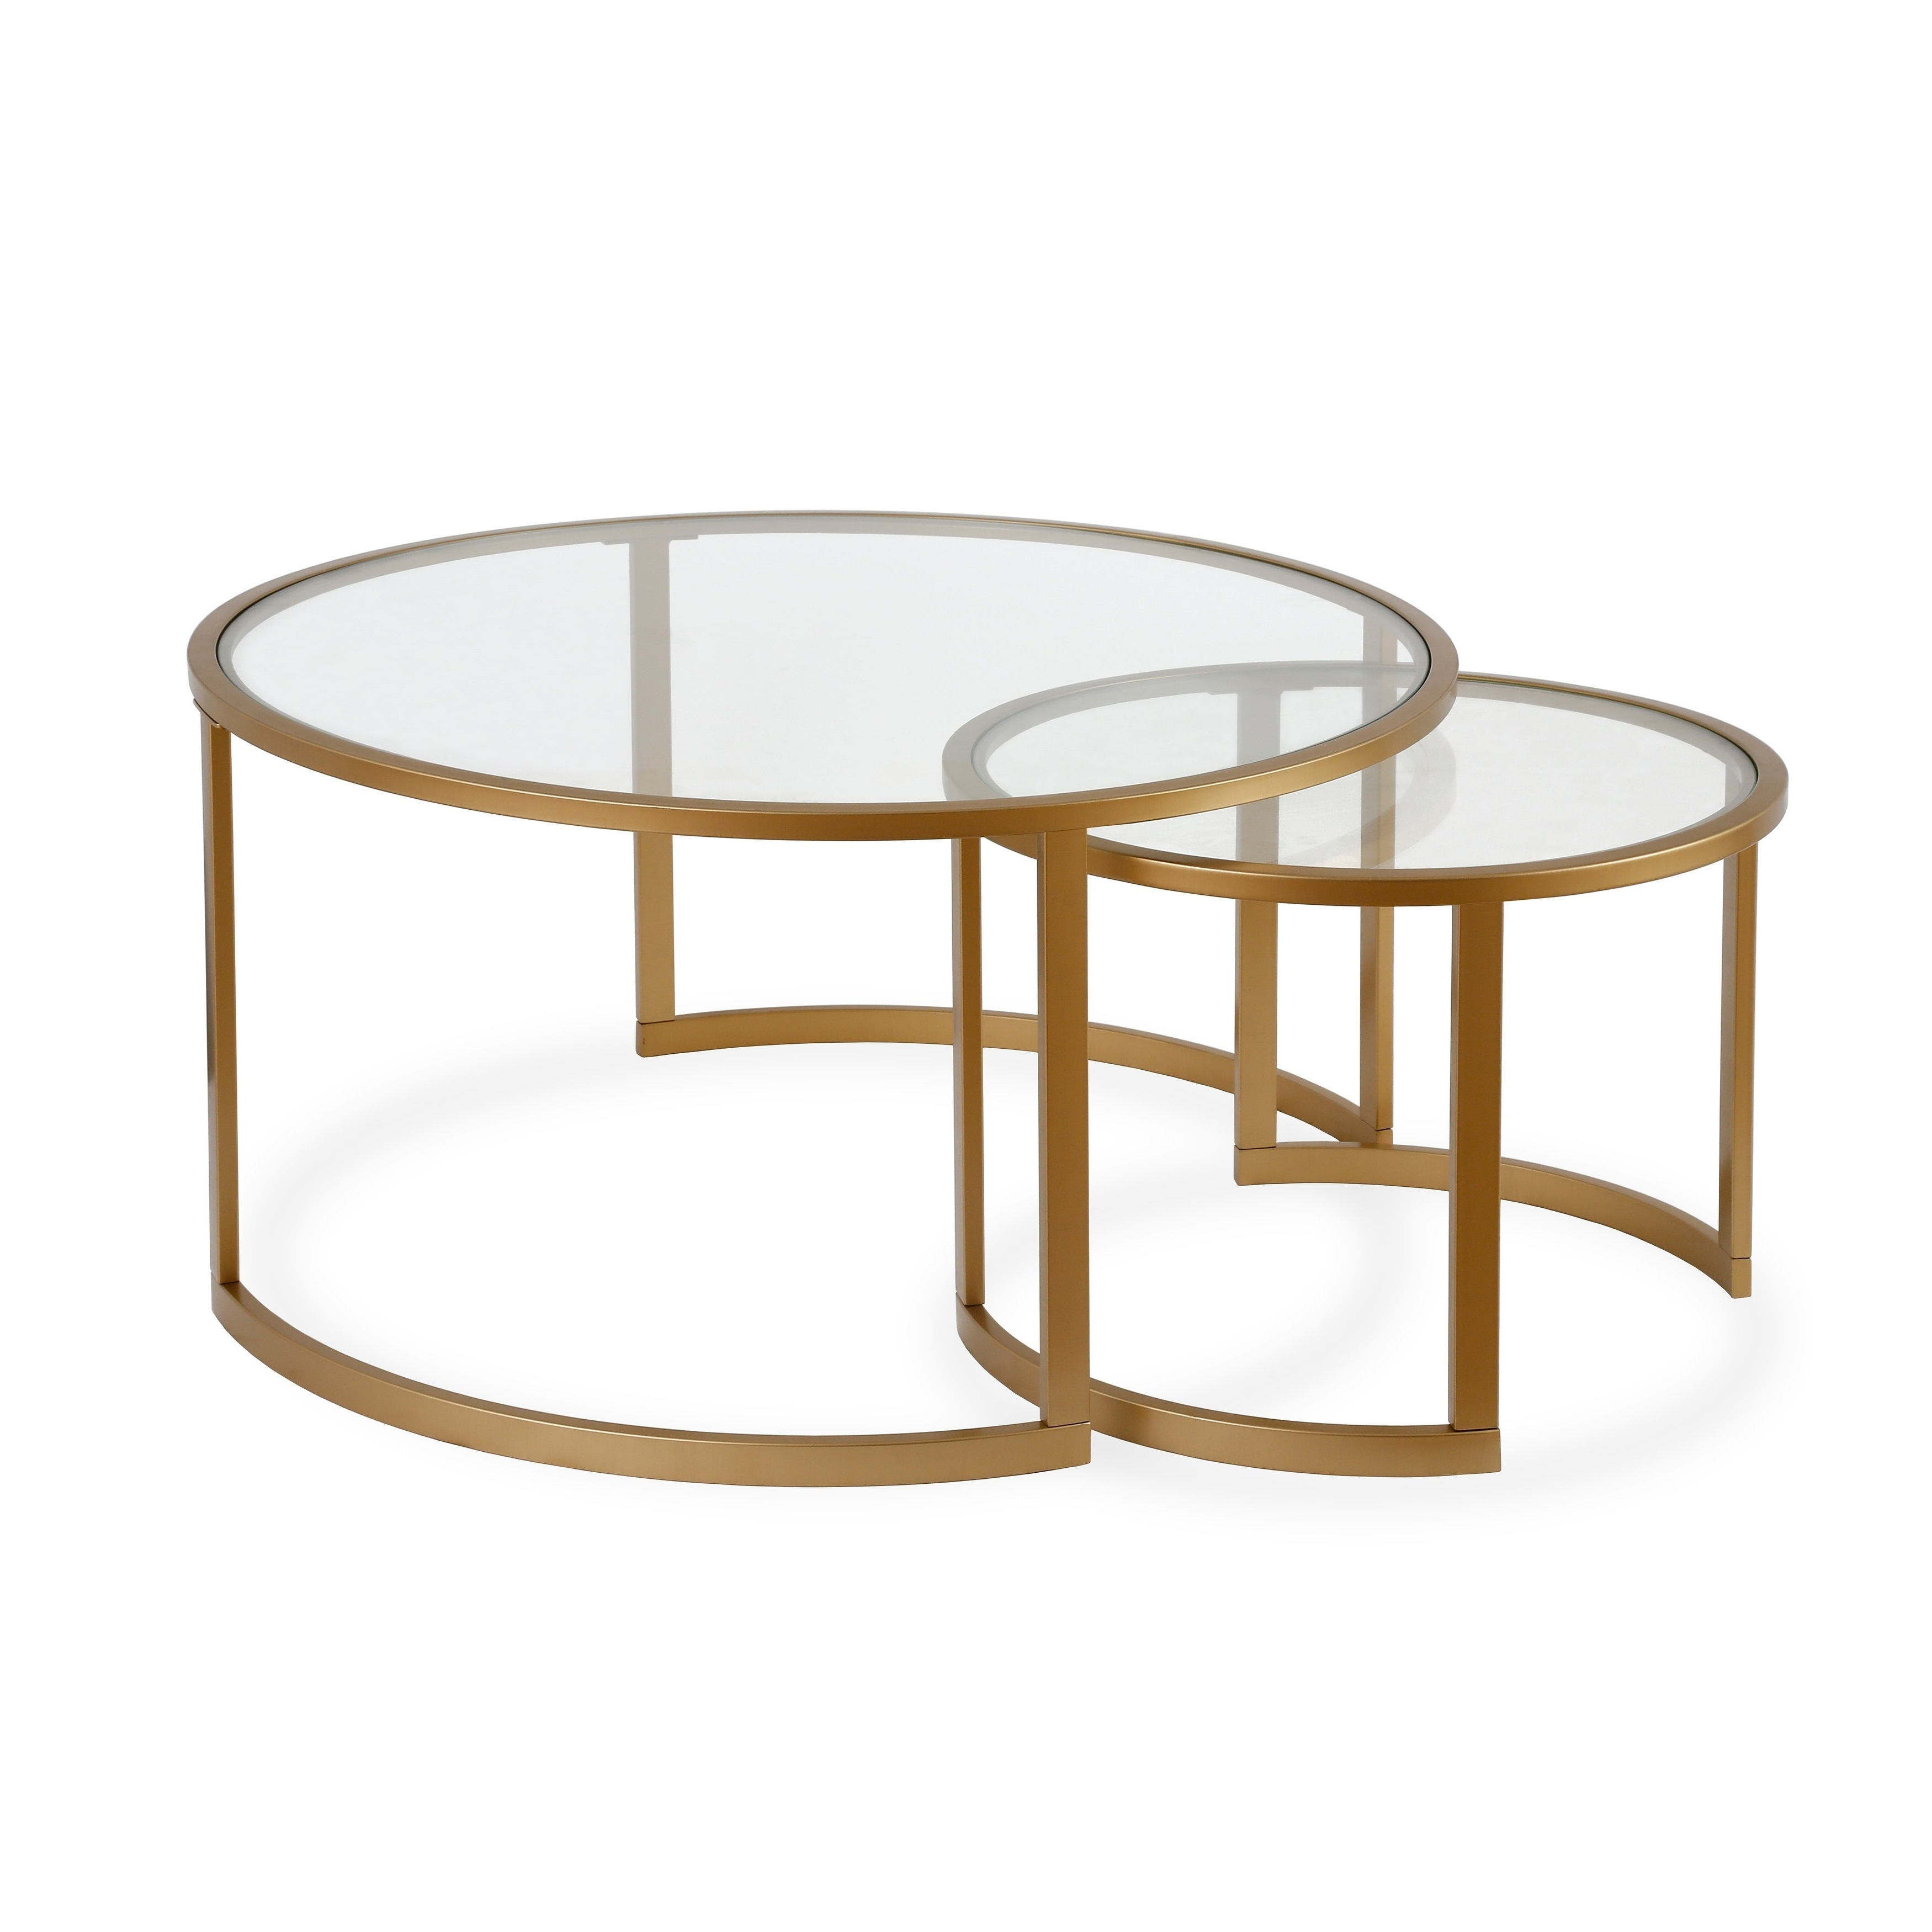 Widely Used Mitera Round Metal Glass Nesting Coffee Tables Intended For Mitera Round Metal/glass Nesting Coffee Tables Set Of 2 (Optional Finishes) (View 20 of 20)